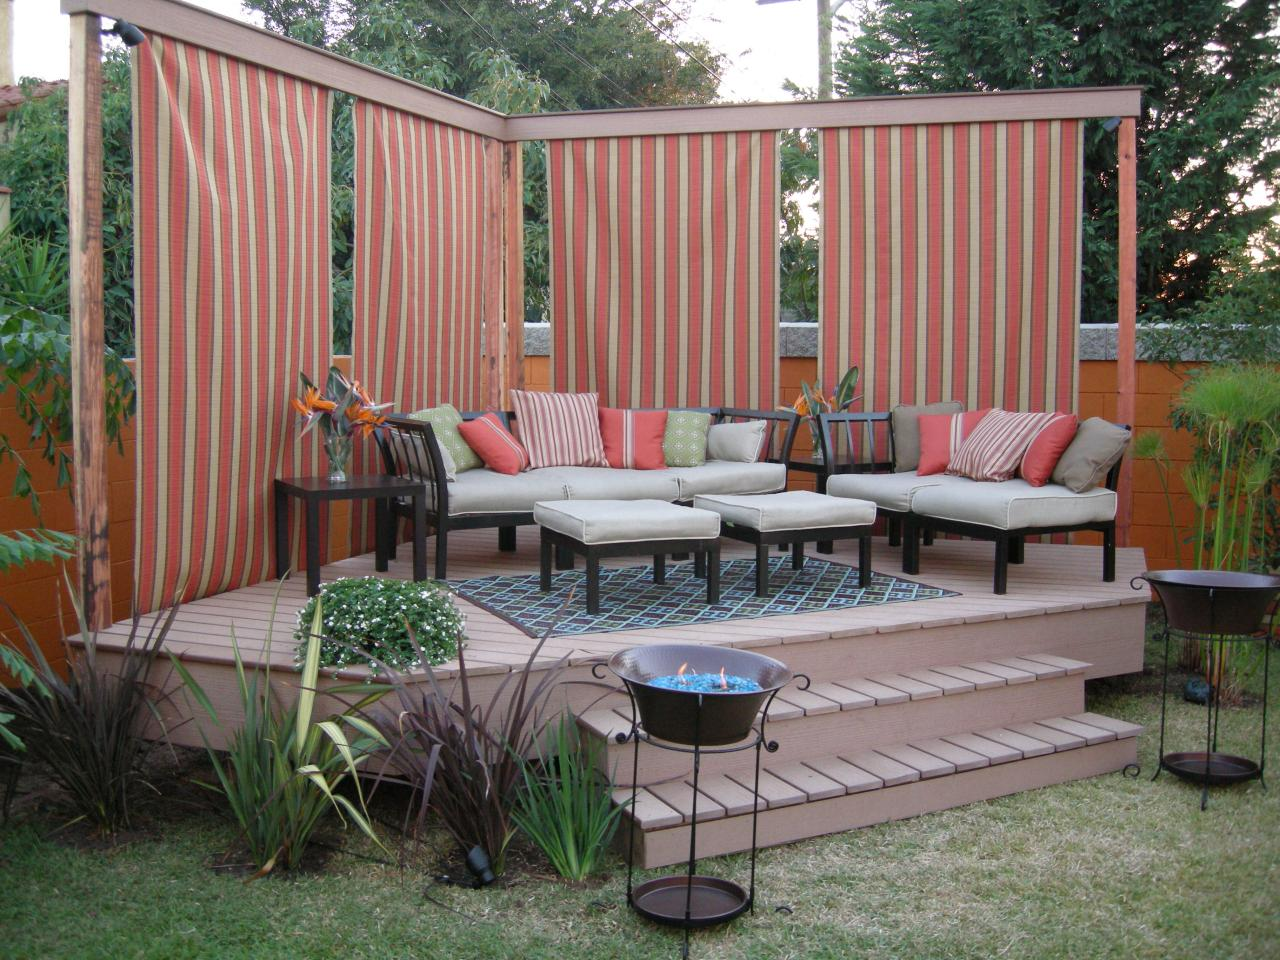 How to build a detached deck hgtv Small deck ideas